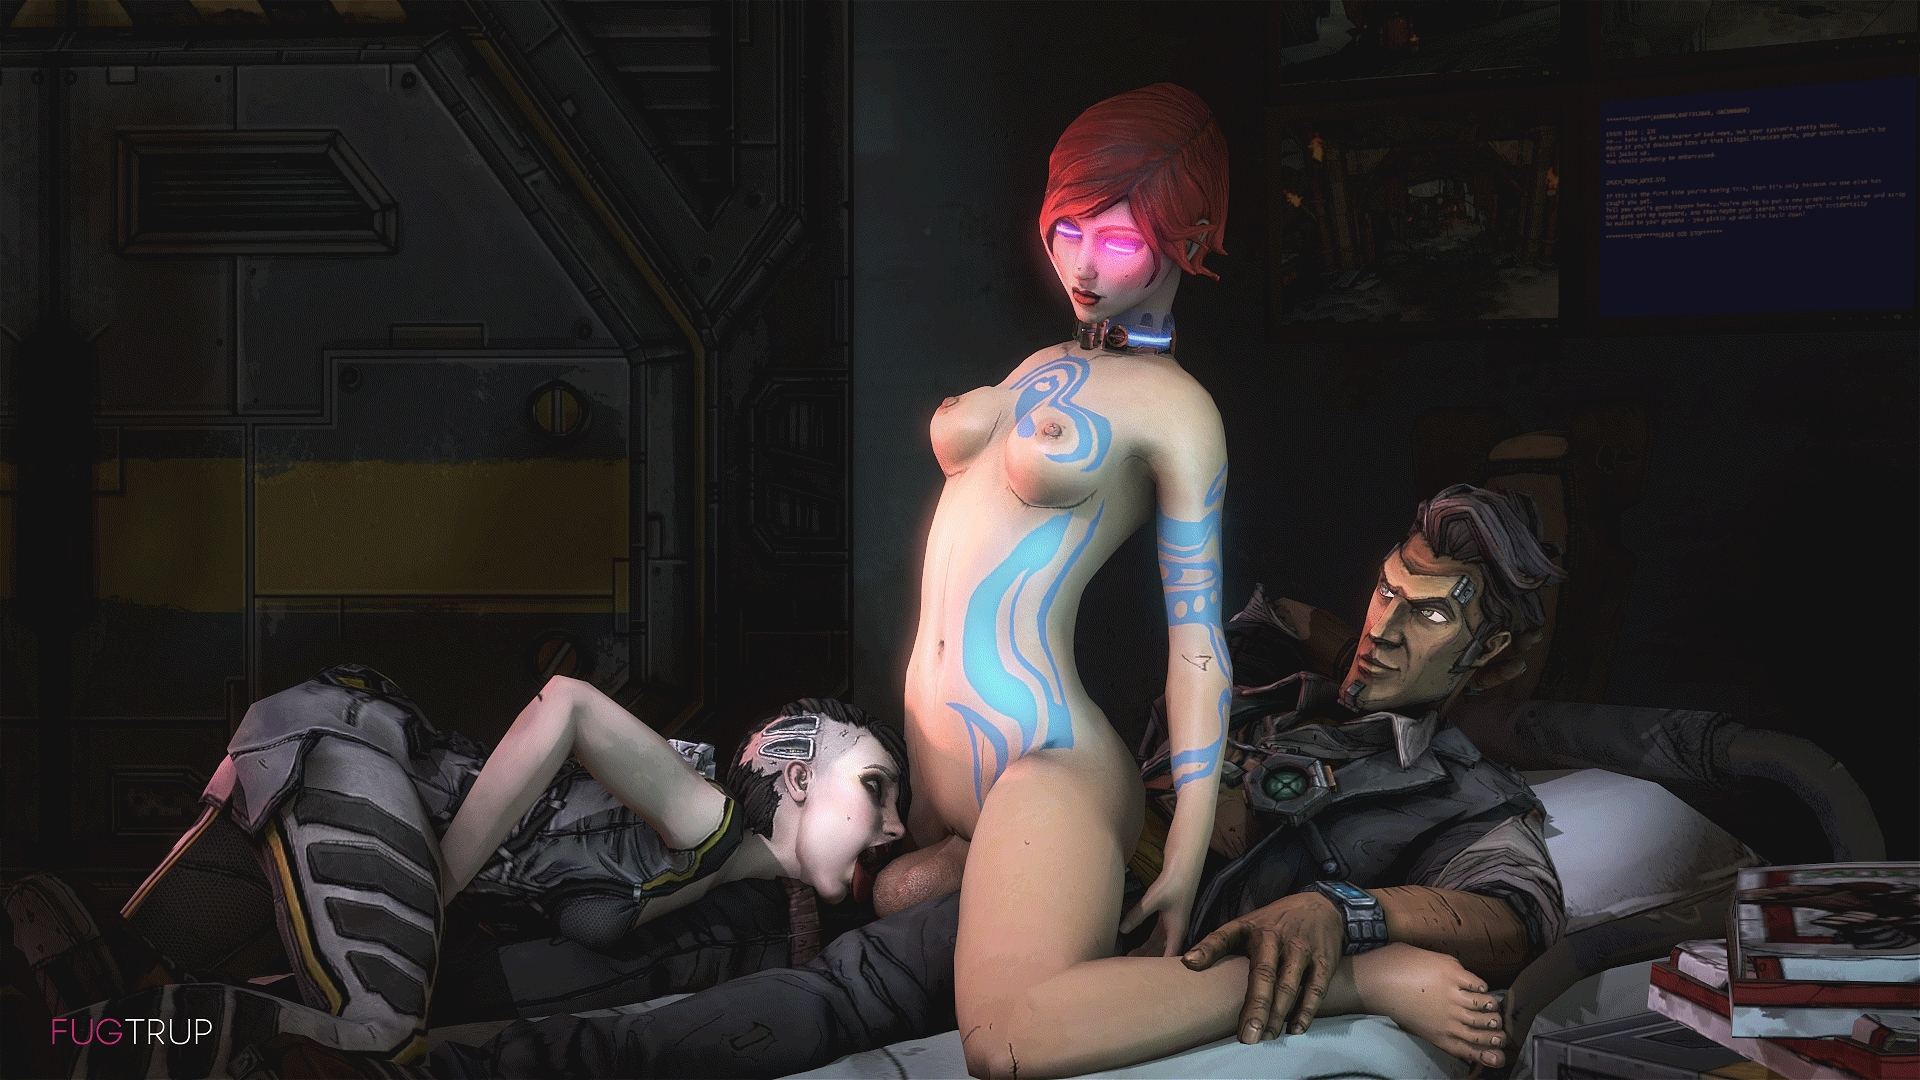 Hot naked lesbian maya and lilith borderlands  hentai pic